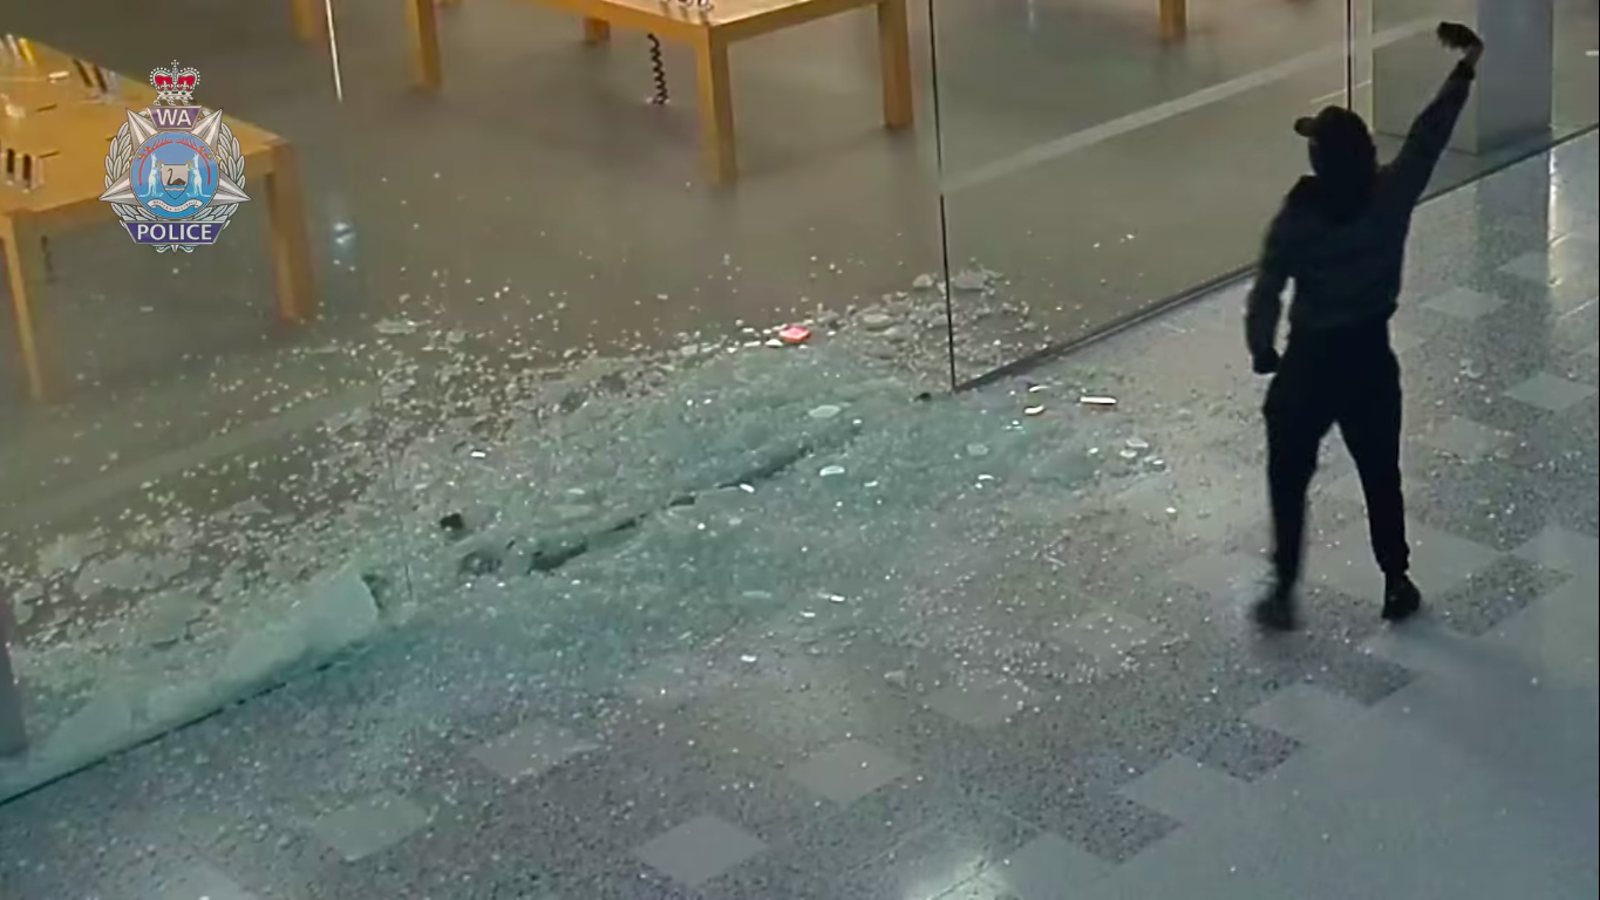 Thieves Steal More Than $300,000 in Apple Products After Smashing Glass Wall With Sledgehammer